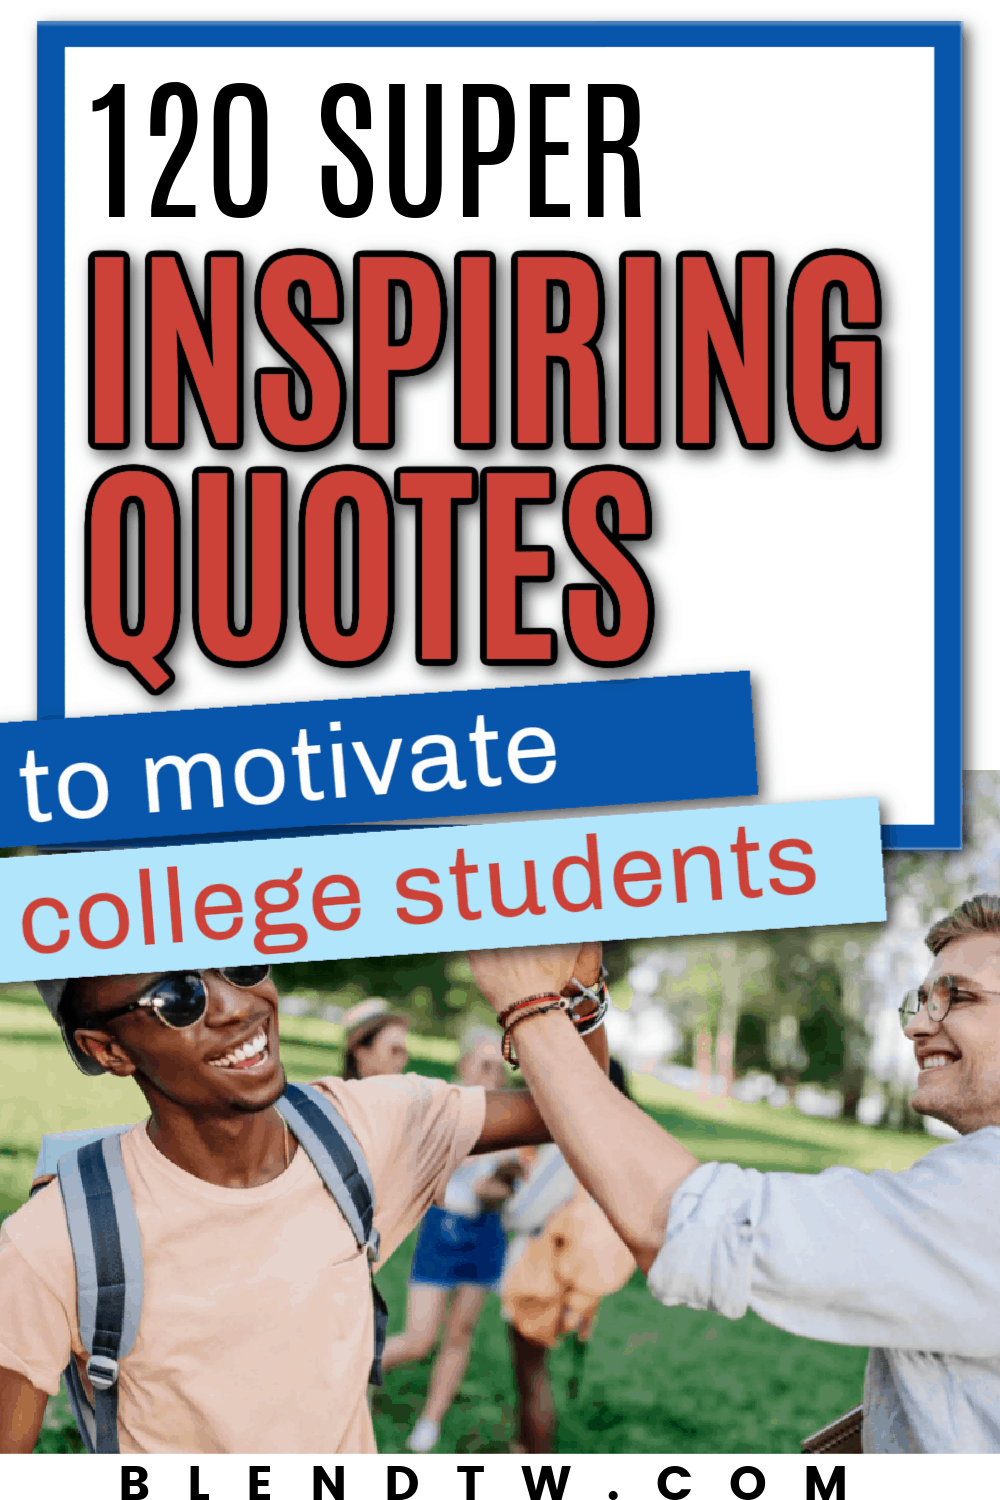 120 super inspiring quotes to motivate college students